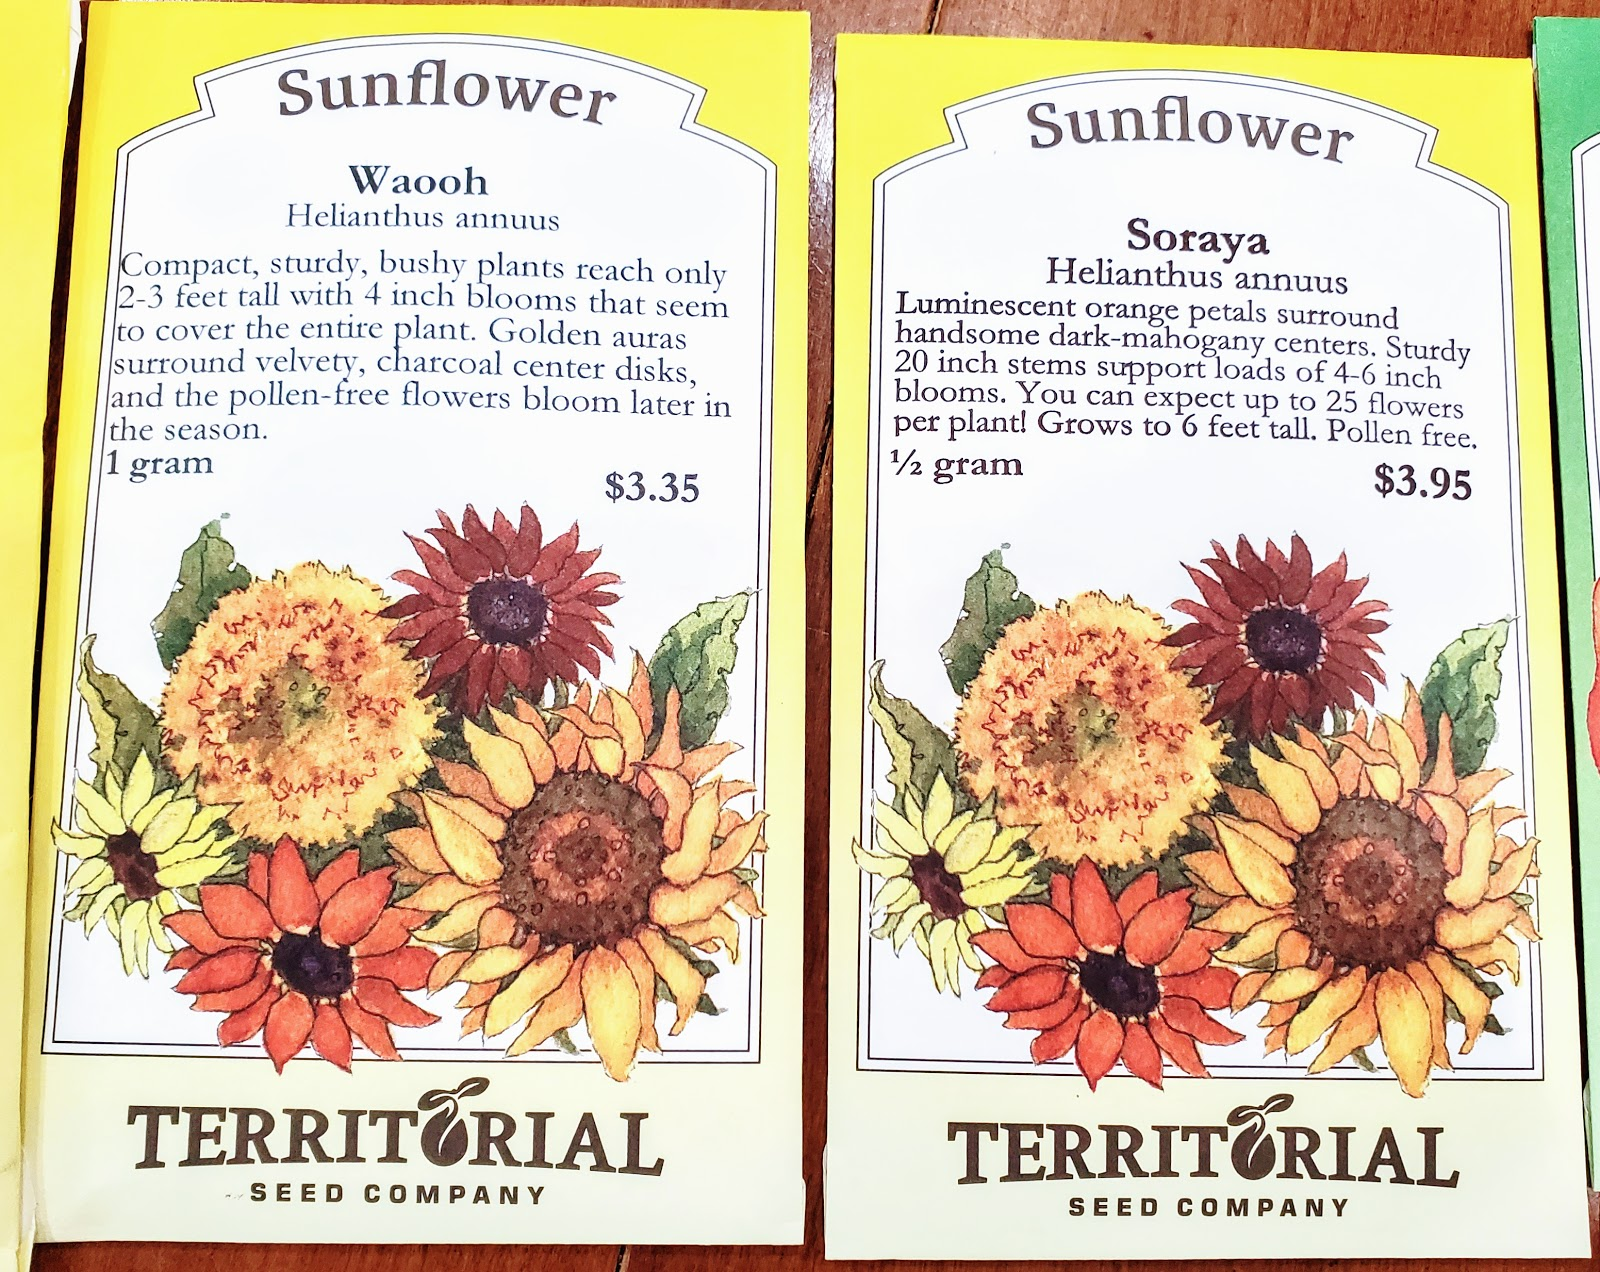 sunflower seeds from territorial seed company